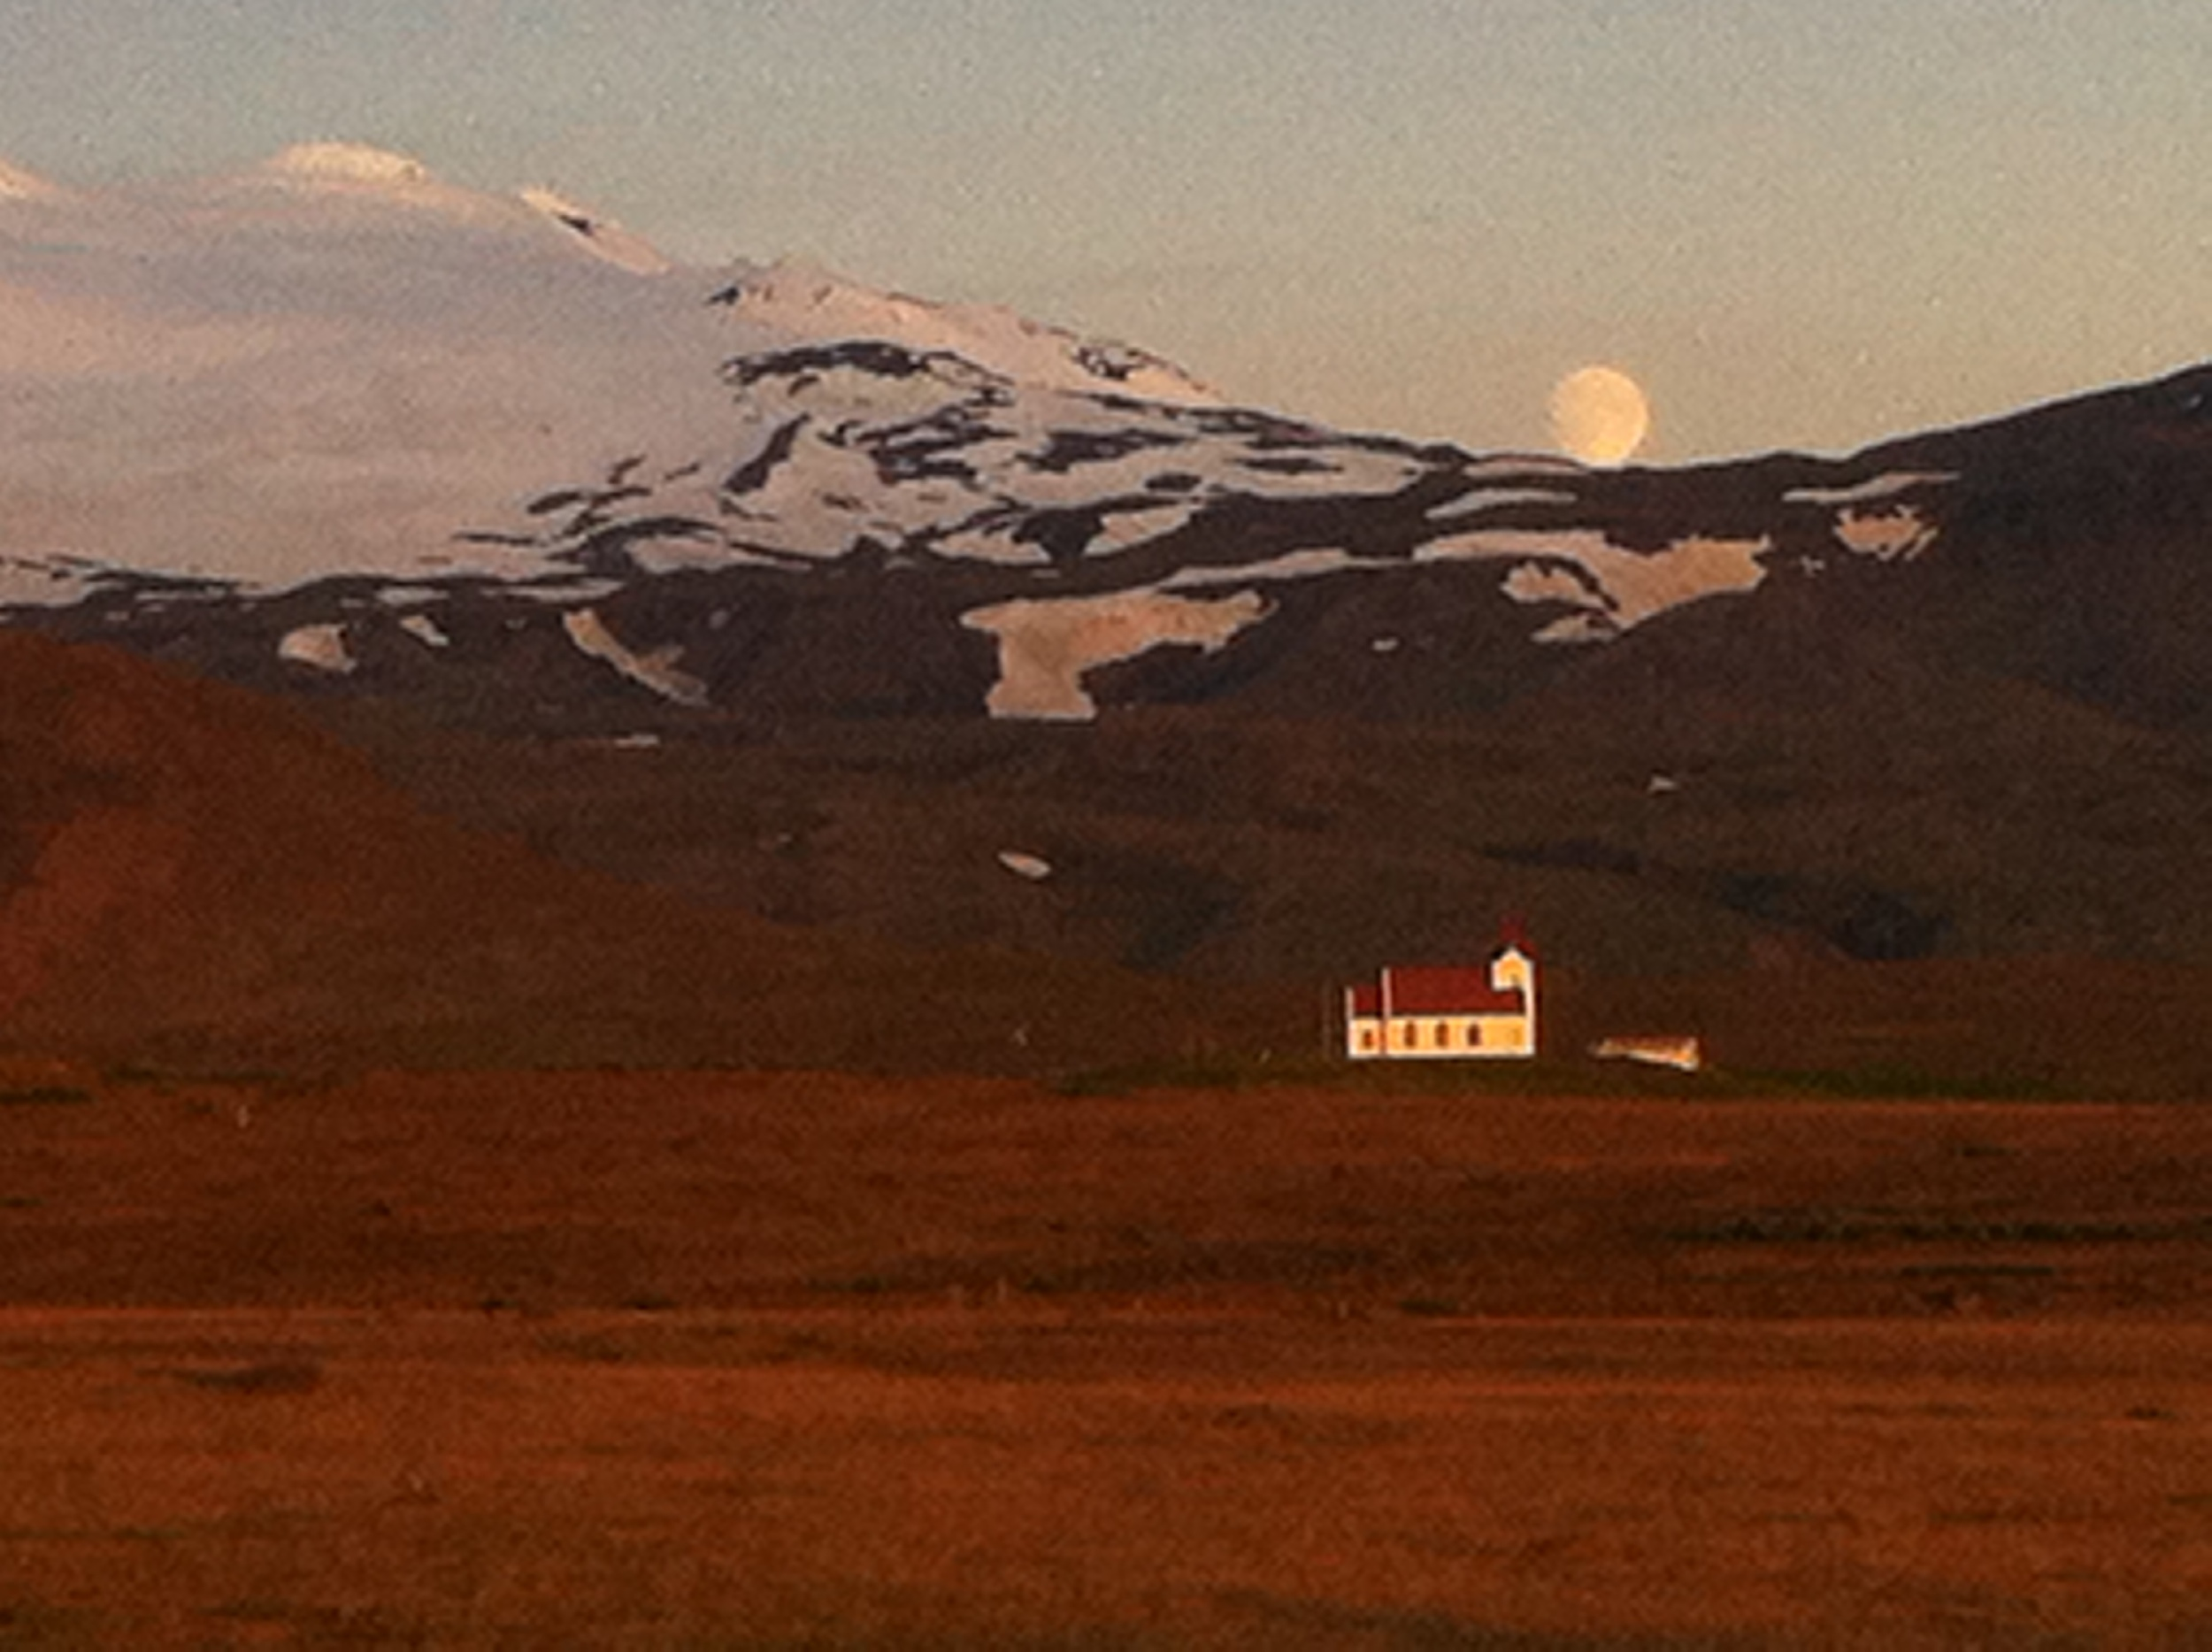 Midnight, June 21st 2013. Northwest Iceland.